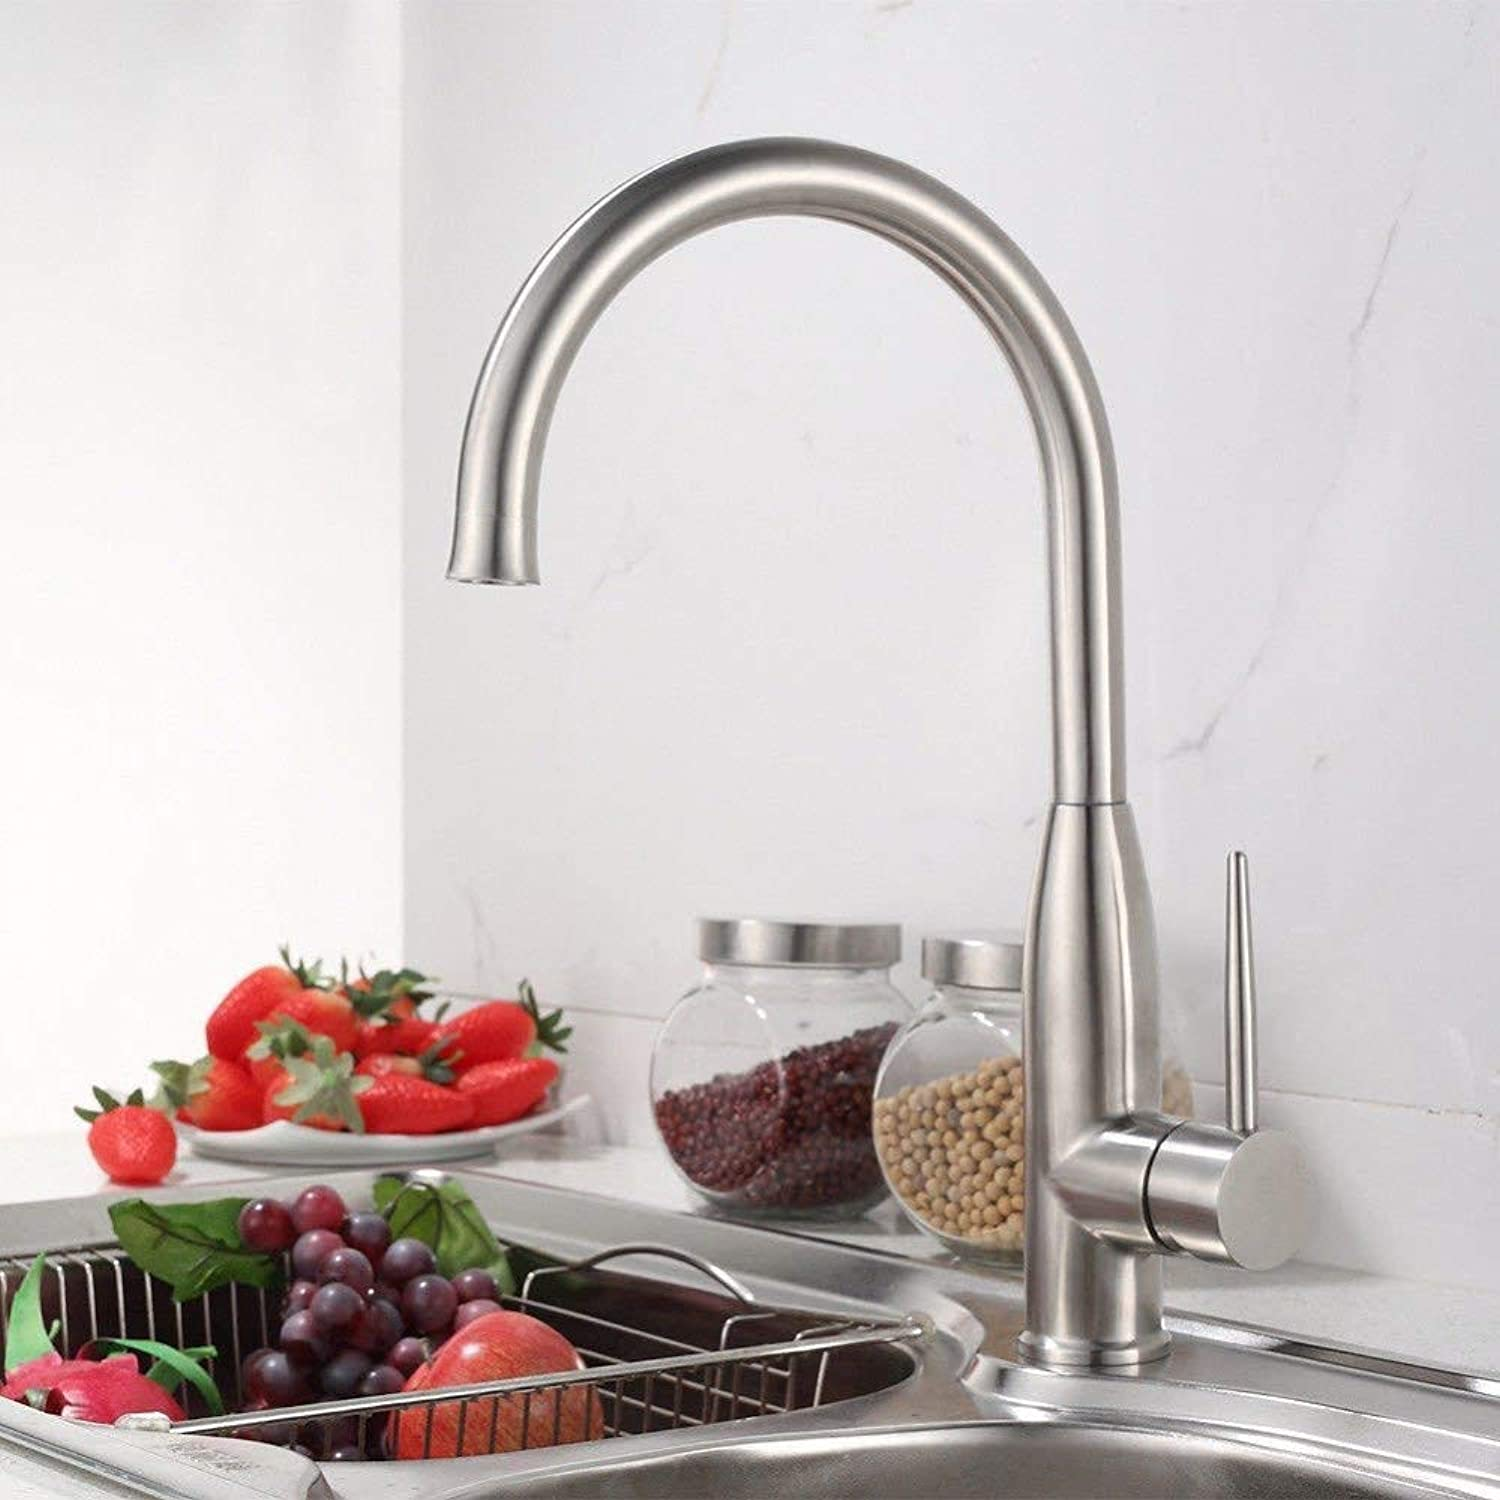 360° redating Faucet Retro Faucet Kitchen Faucet Sink Mixer Taps Stainless Steel Sink Faucet Basin Mixer Tap Hot and Cold Water Sink Faucet with redating Spout Basin Mixer Tap Brushed Brass